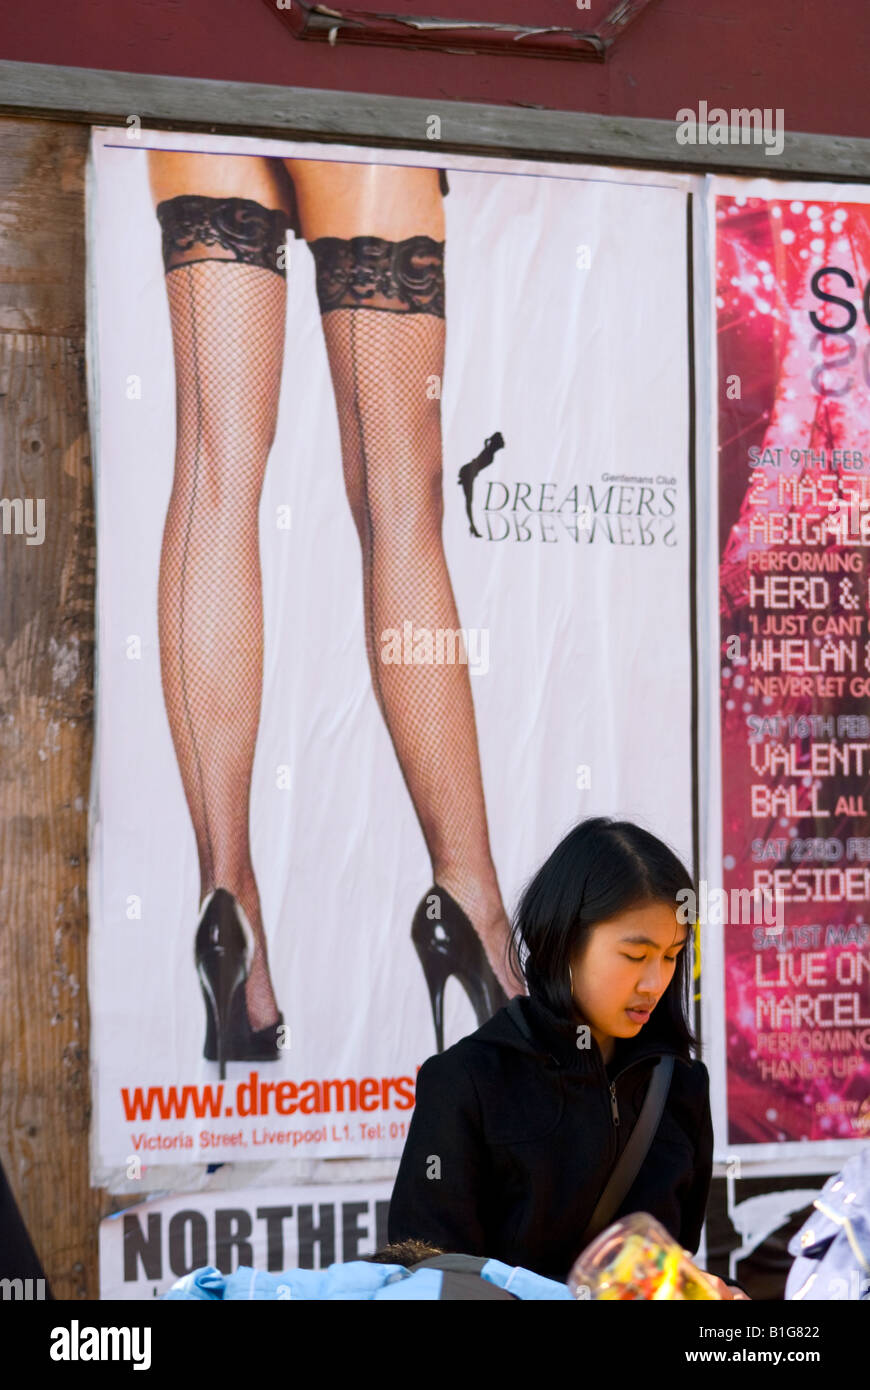 Chinese street vendor with poster in background showing fishnet clad legs advertising pole dancing club - Stock Image